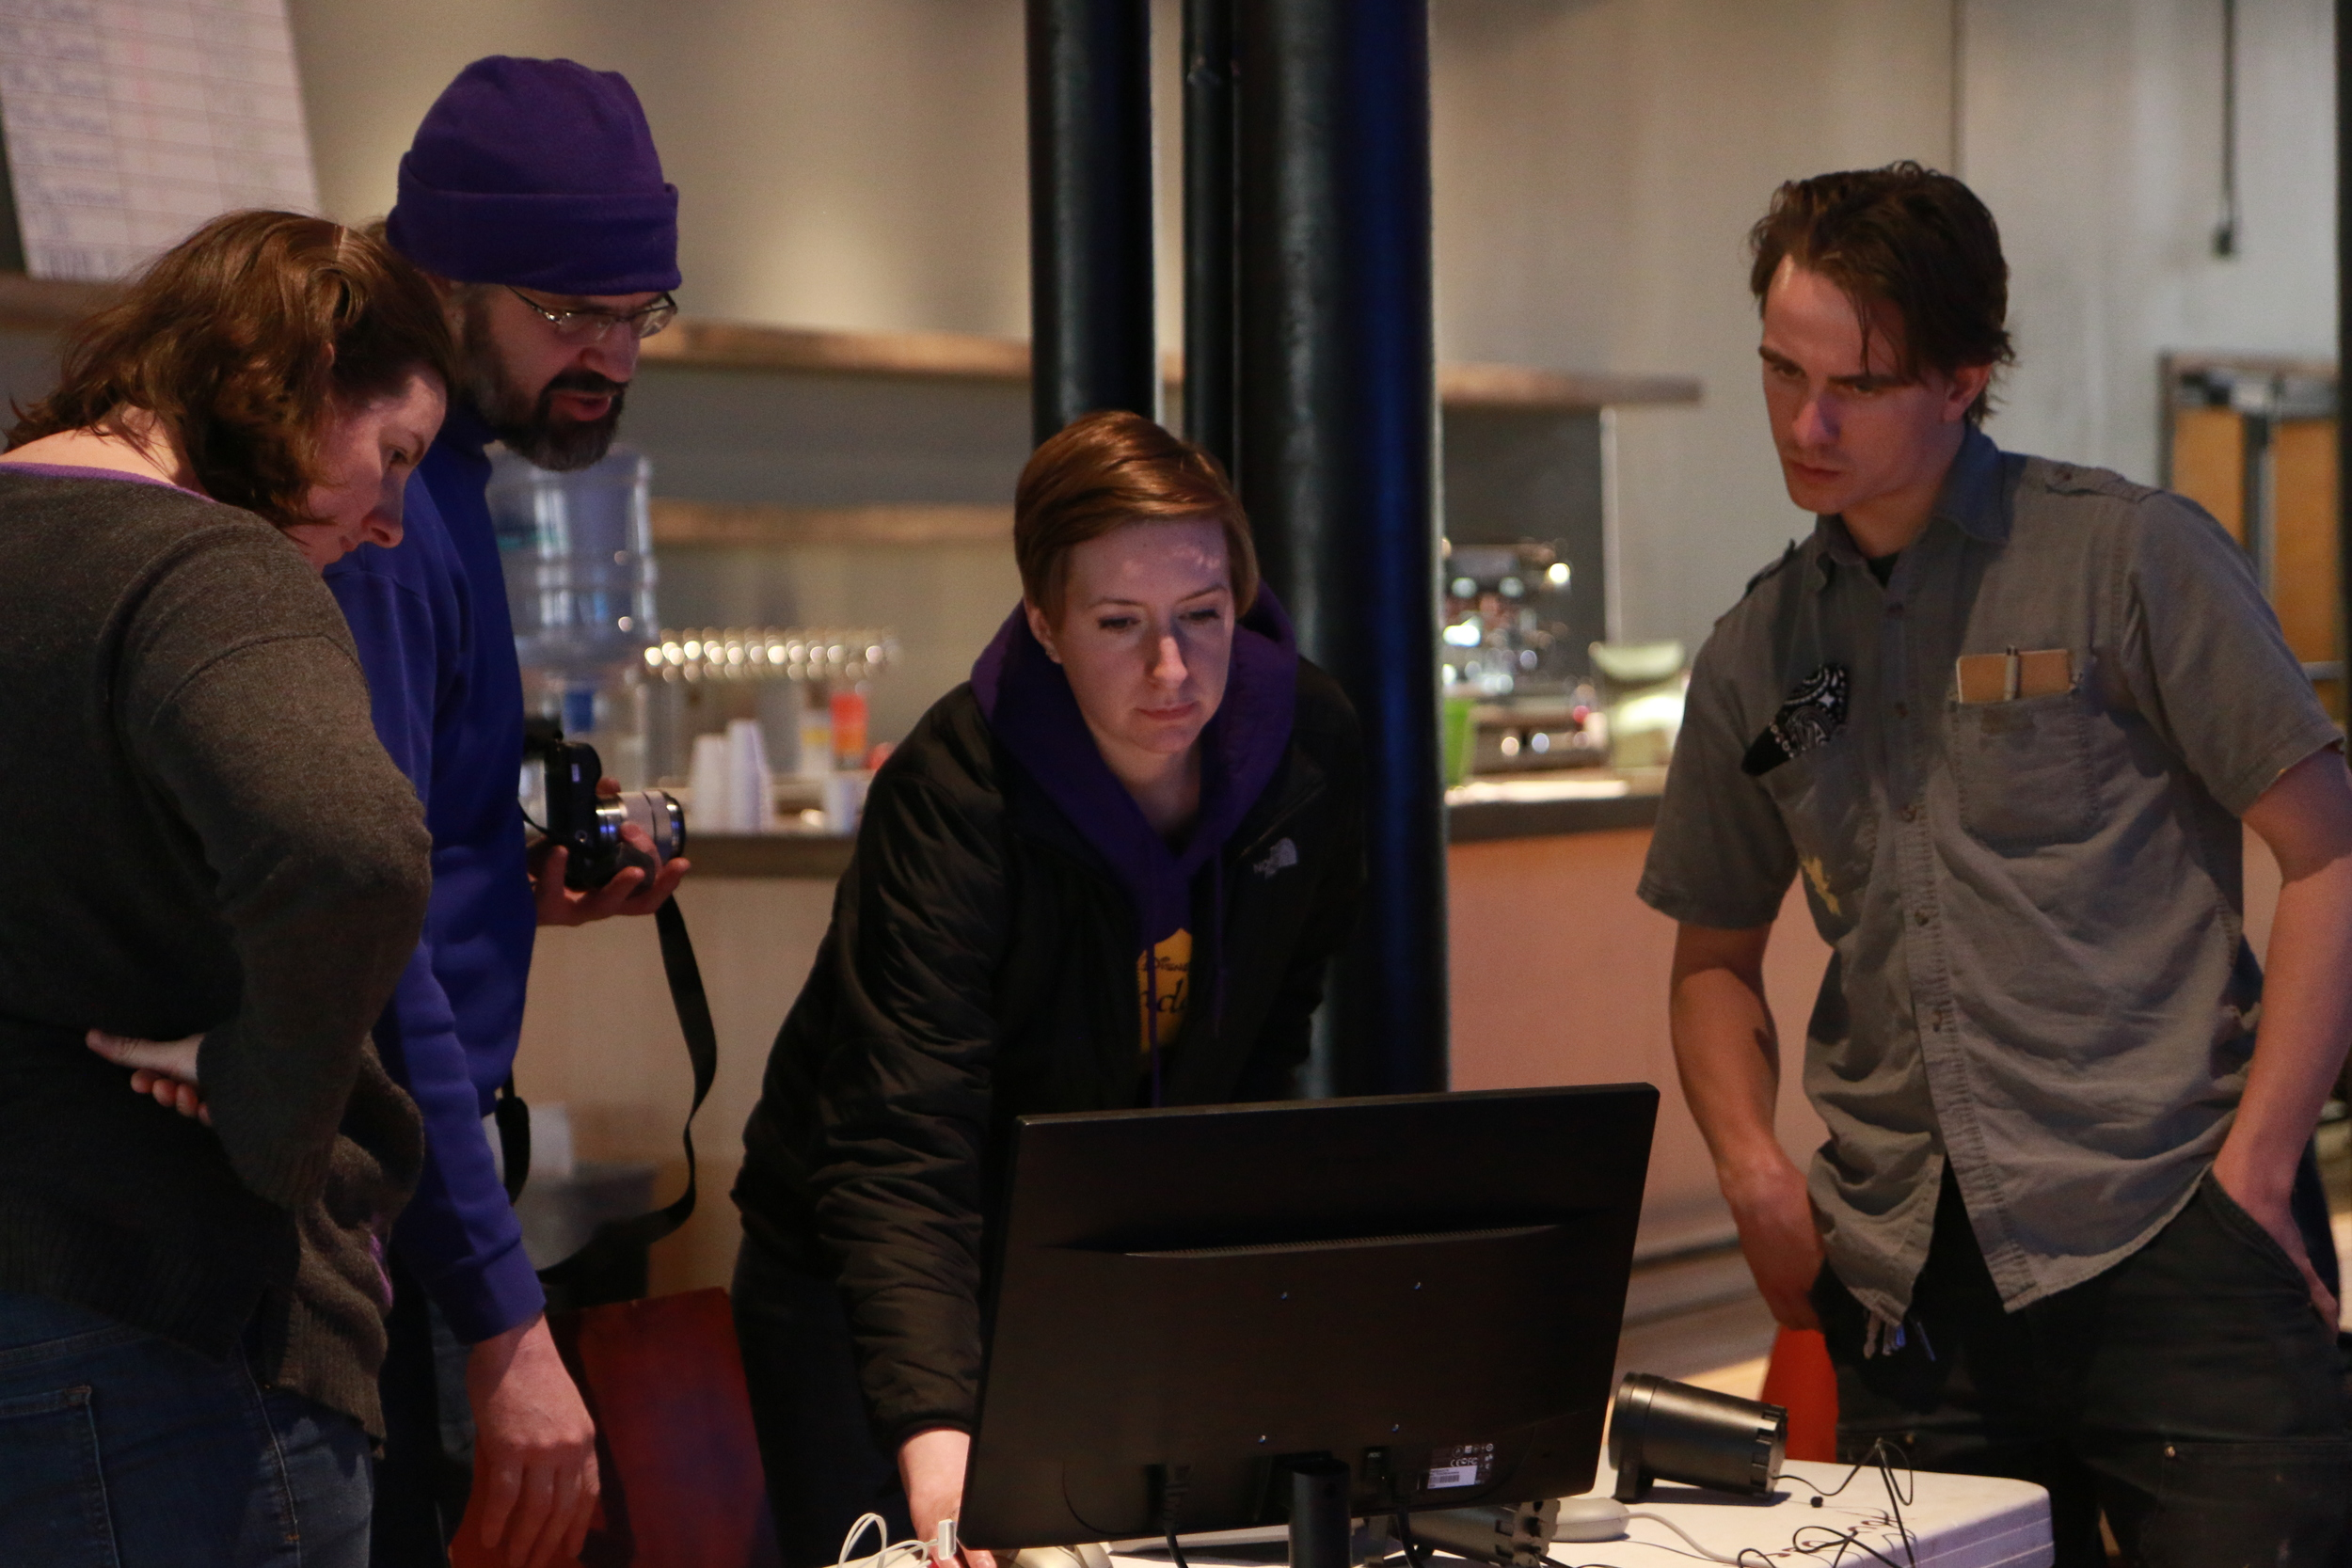 Sound Designer & McKnight Fellowship Recipient C. Andrew Mayer (second from the left) teaches QLab 3.